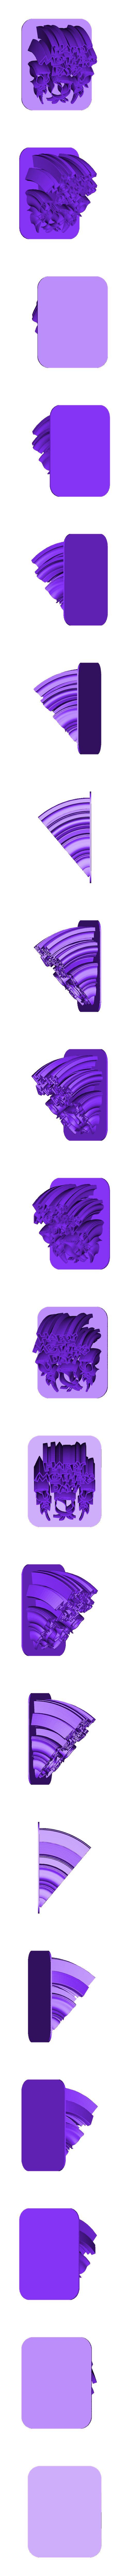 large 120mm mothersday 6px.stl Download free STL file happy mothersday 2 files 1 small 1 large • 3D printing object, liggett1